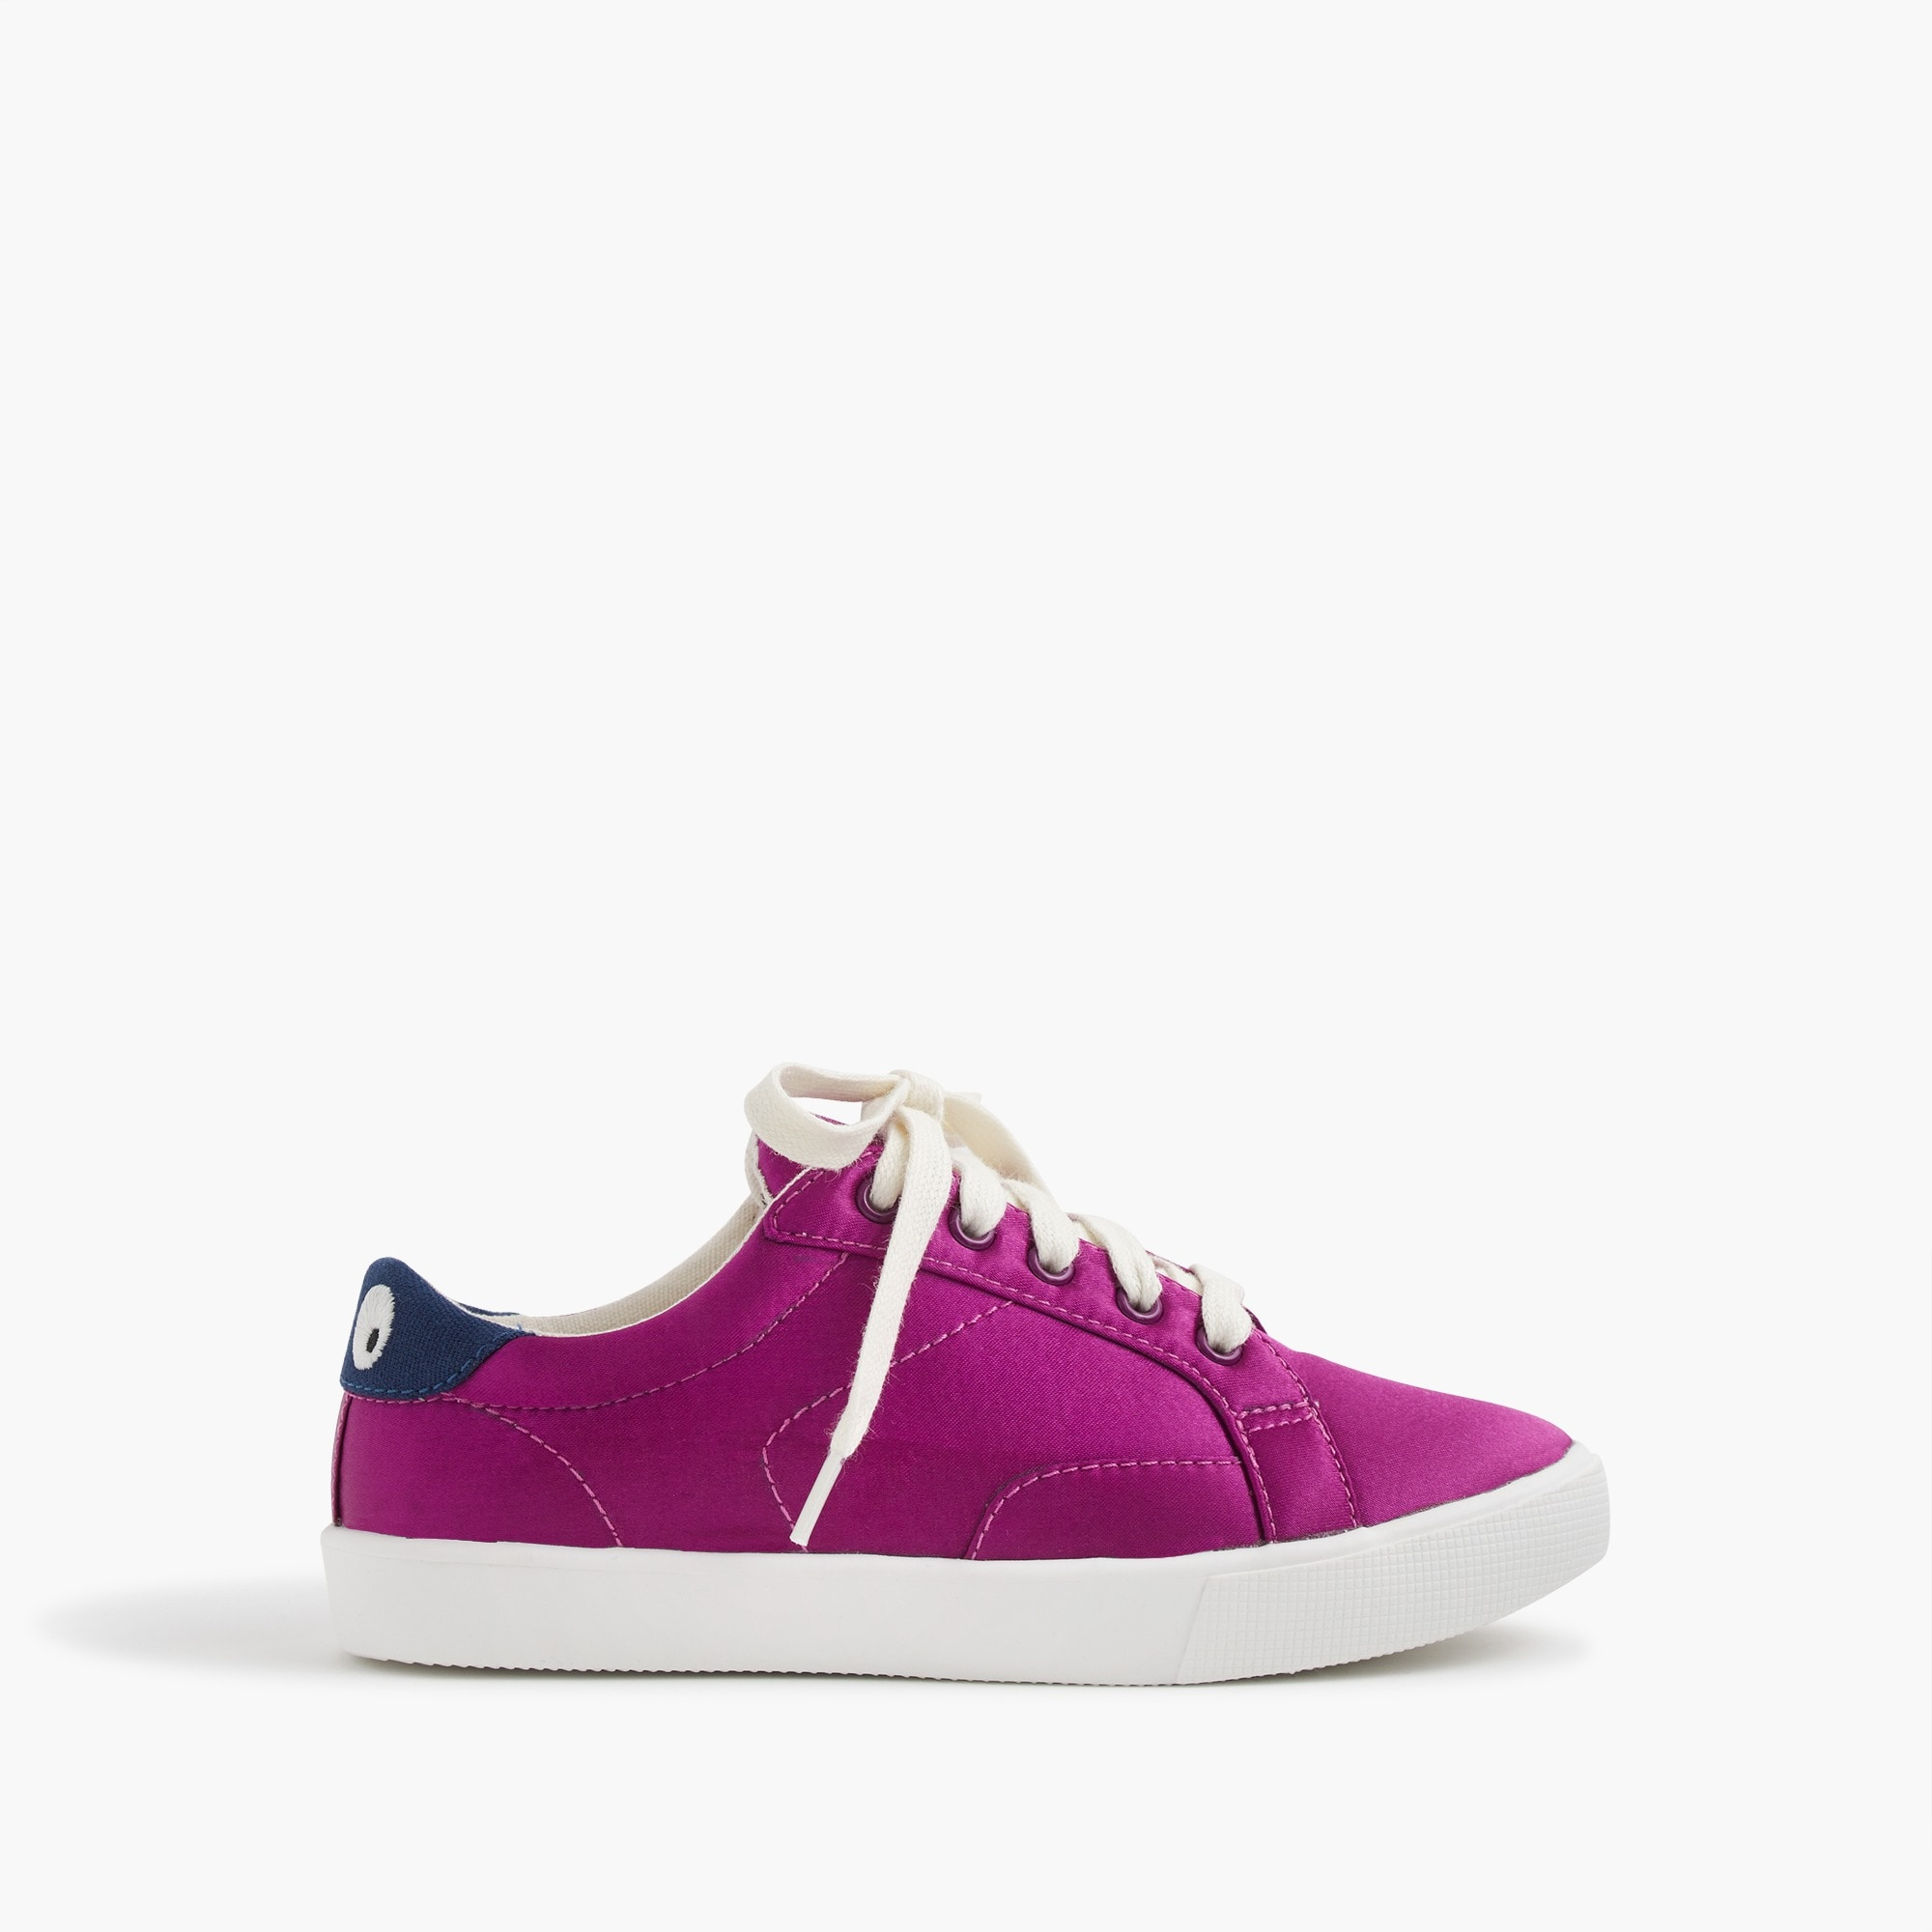 kids' satin lace up max the monster sneakers : girl shoes & sneakers